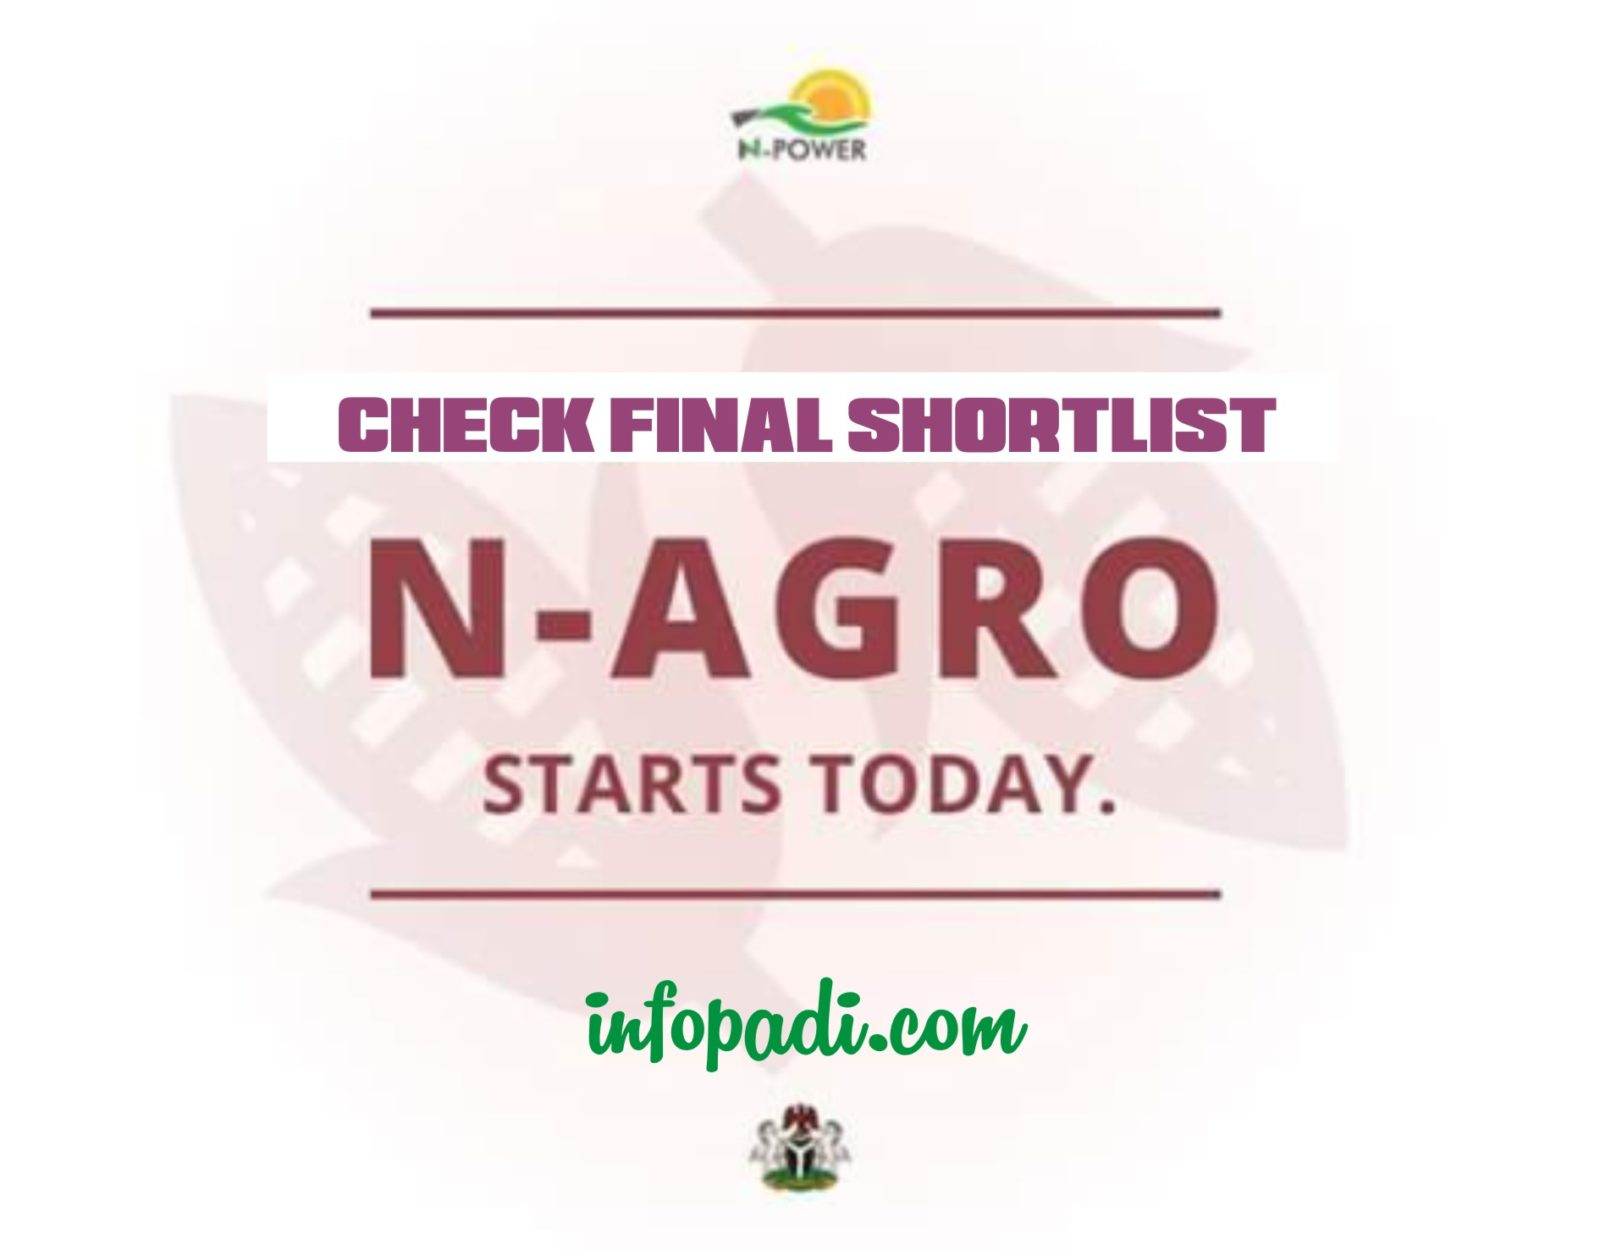 Npower Agro (N-Agro) Final Shortlist 2017/2018- Check for your name here